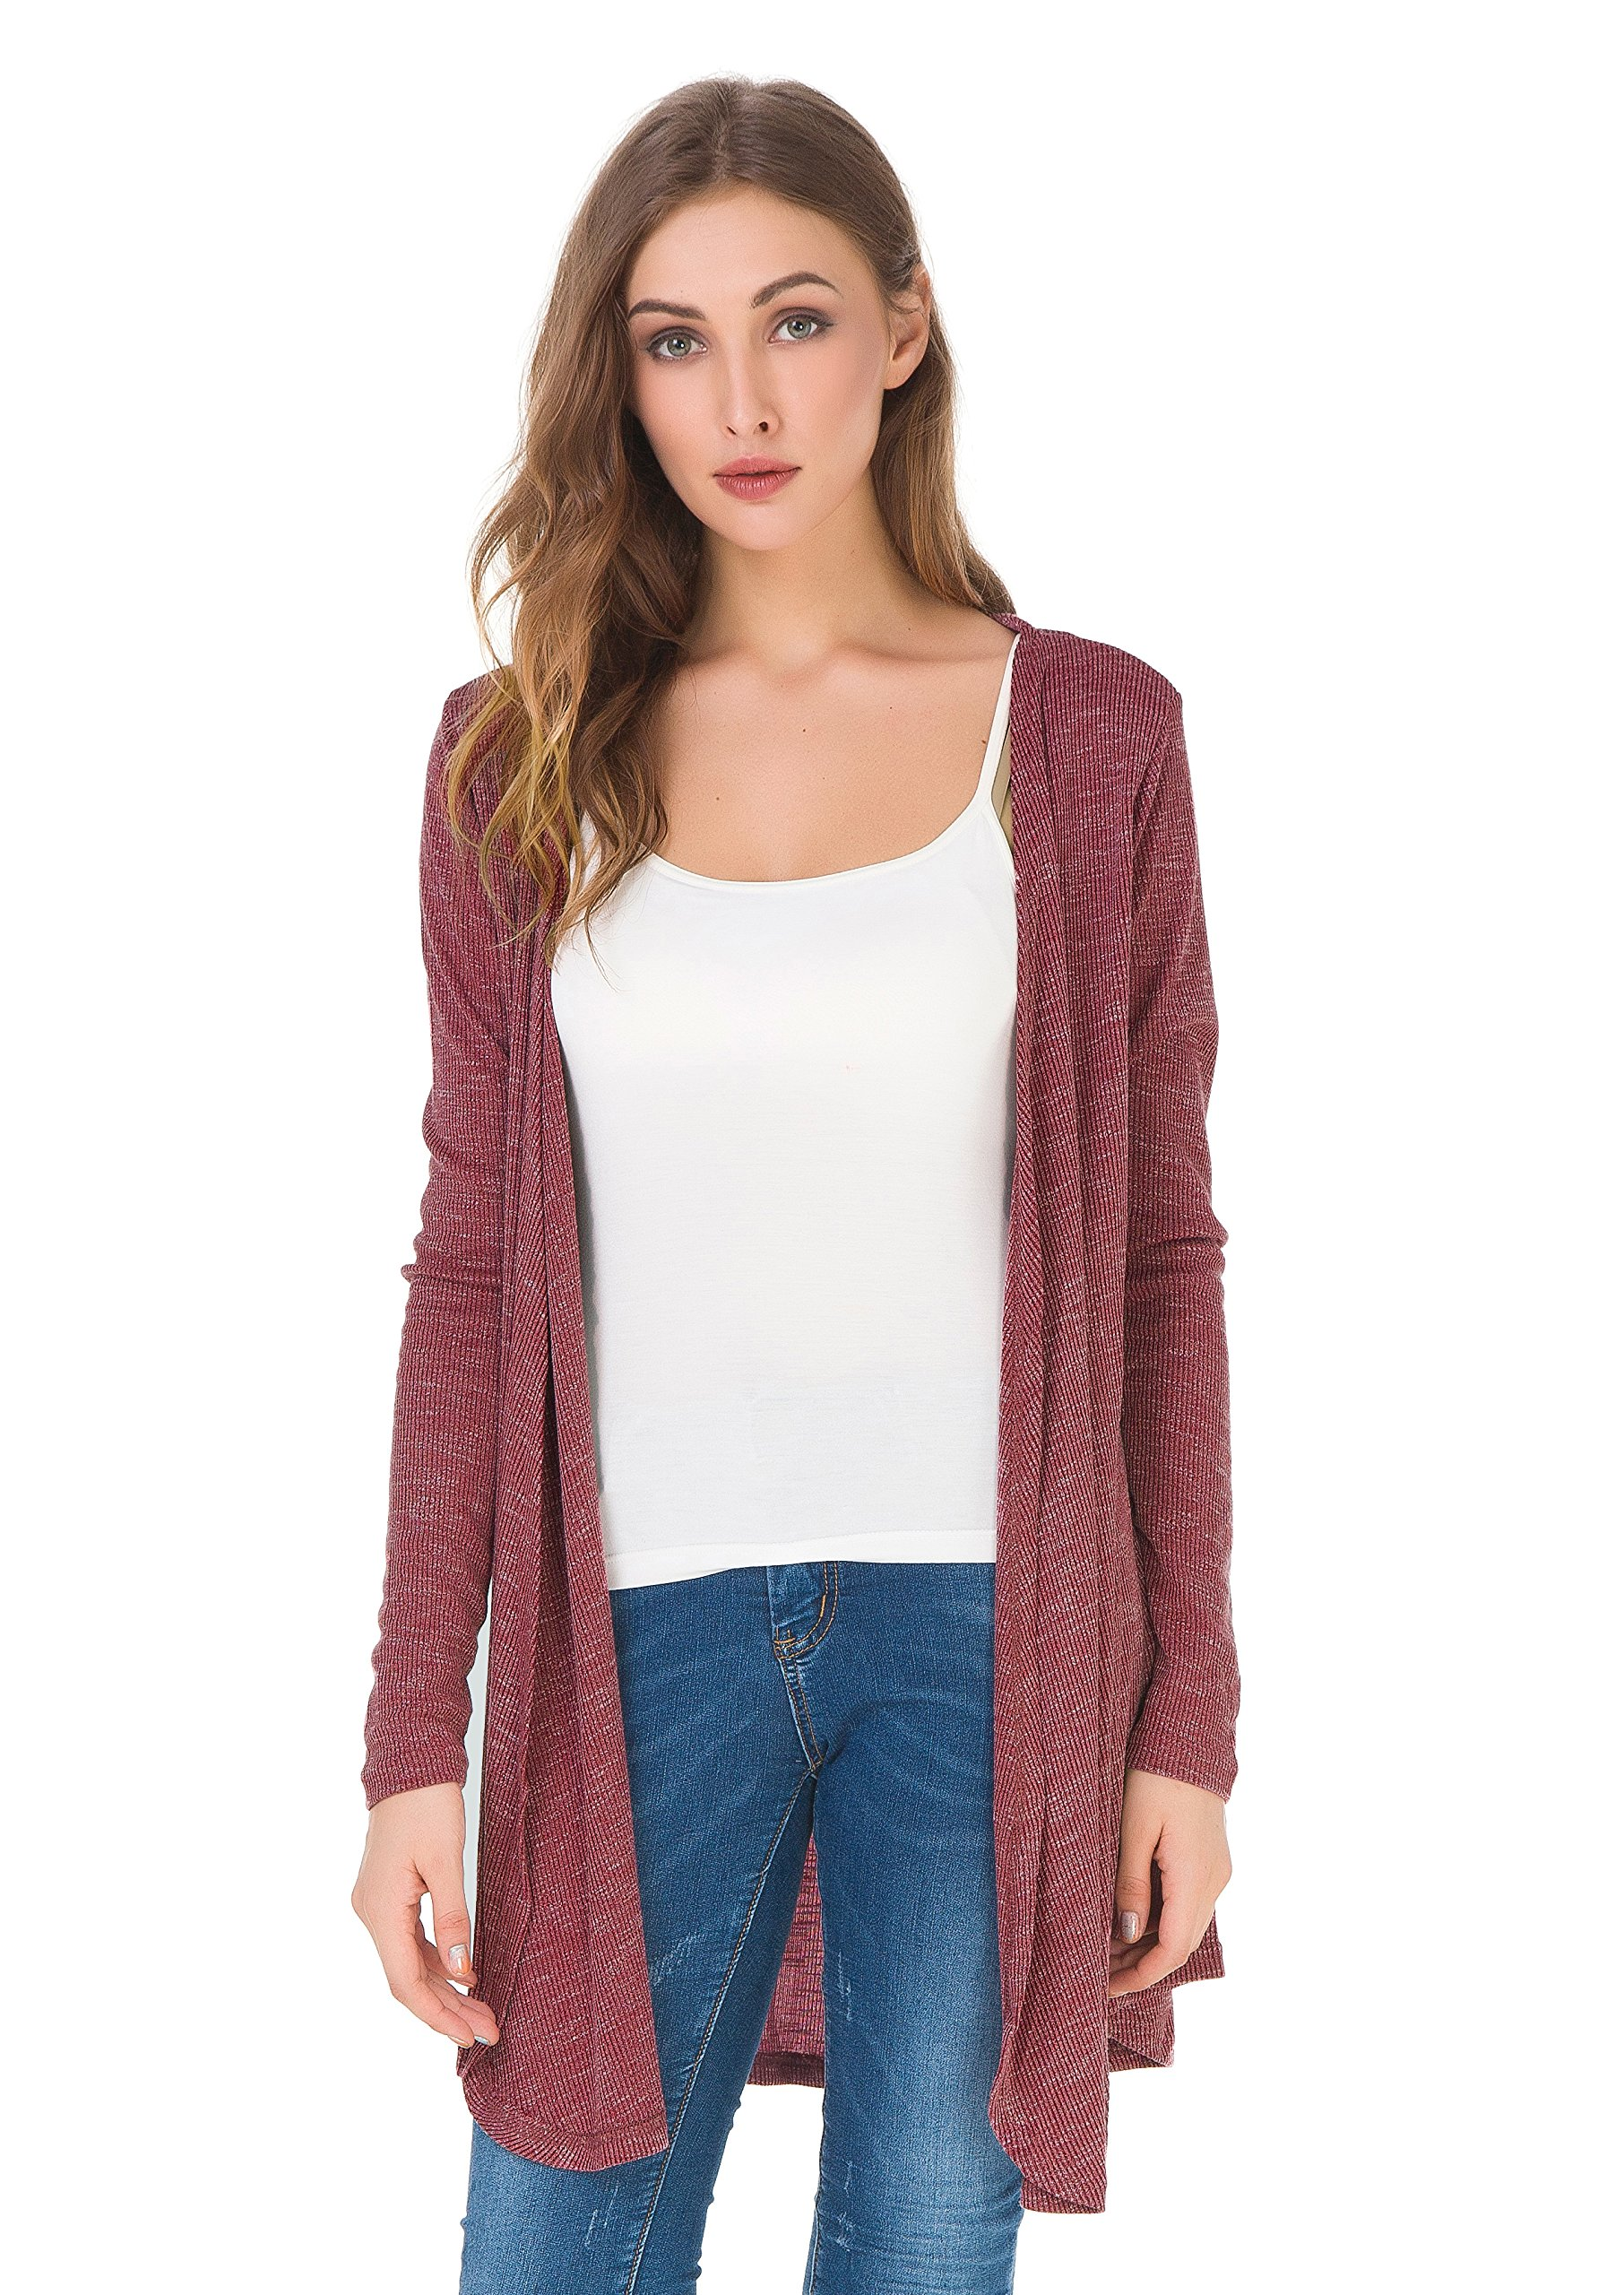 Upopby Women's Soft Casual Open Front Drape Cardigan Long Sleeve Knit Cardigan Sweater Plus Size Burgundy L